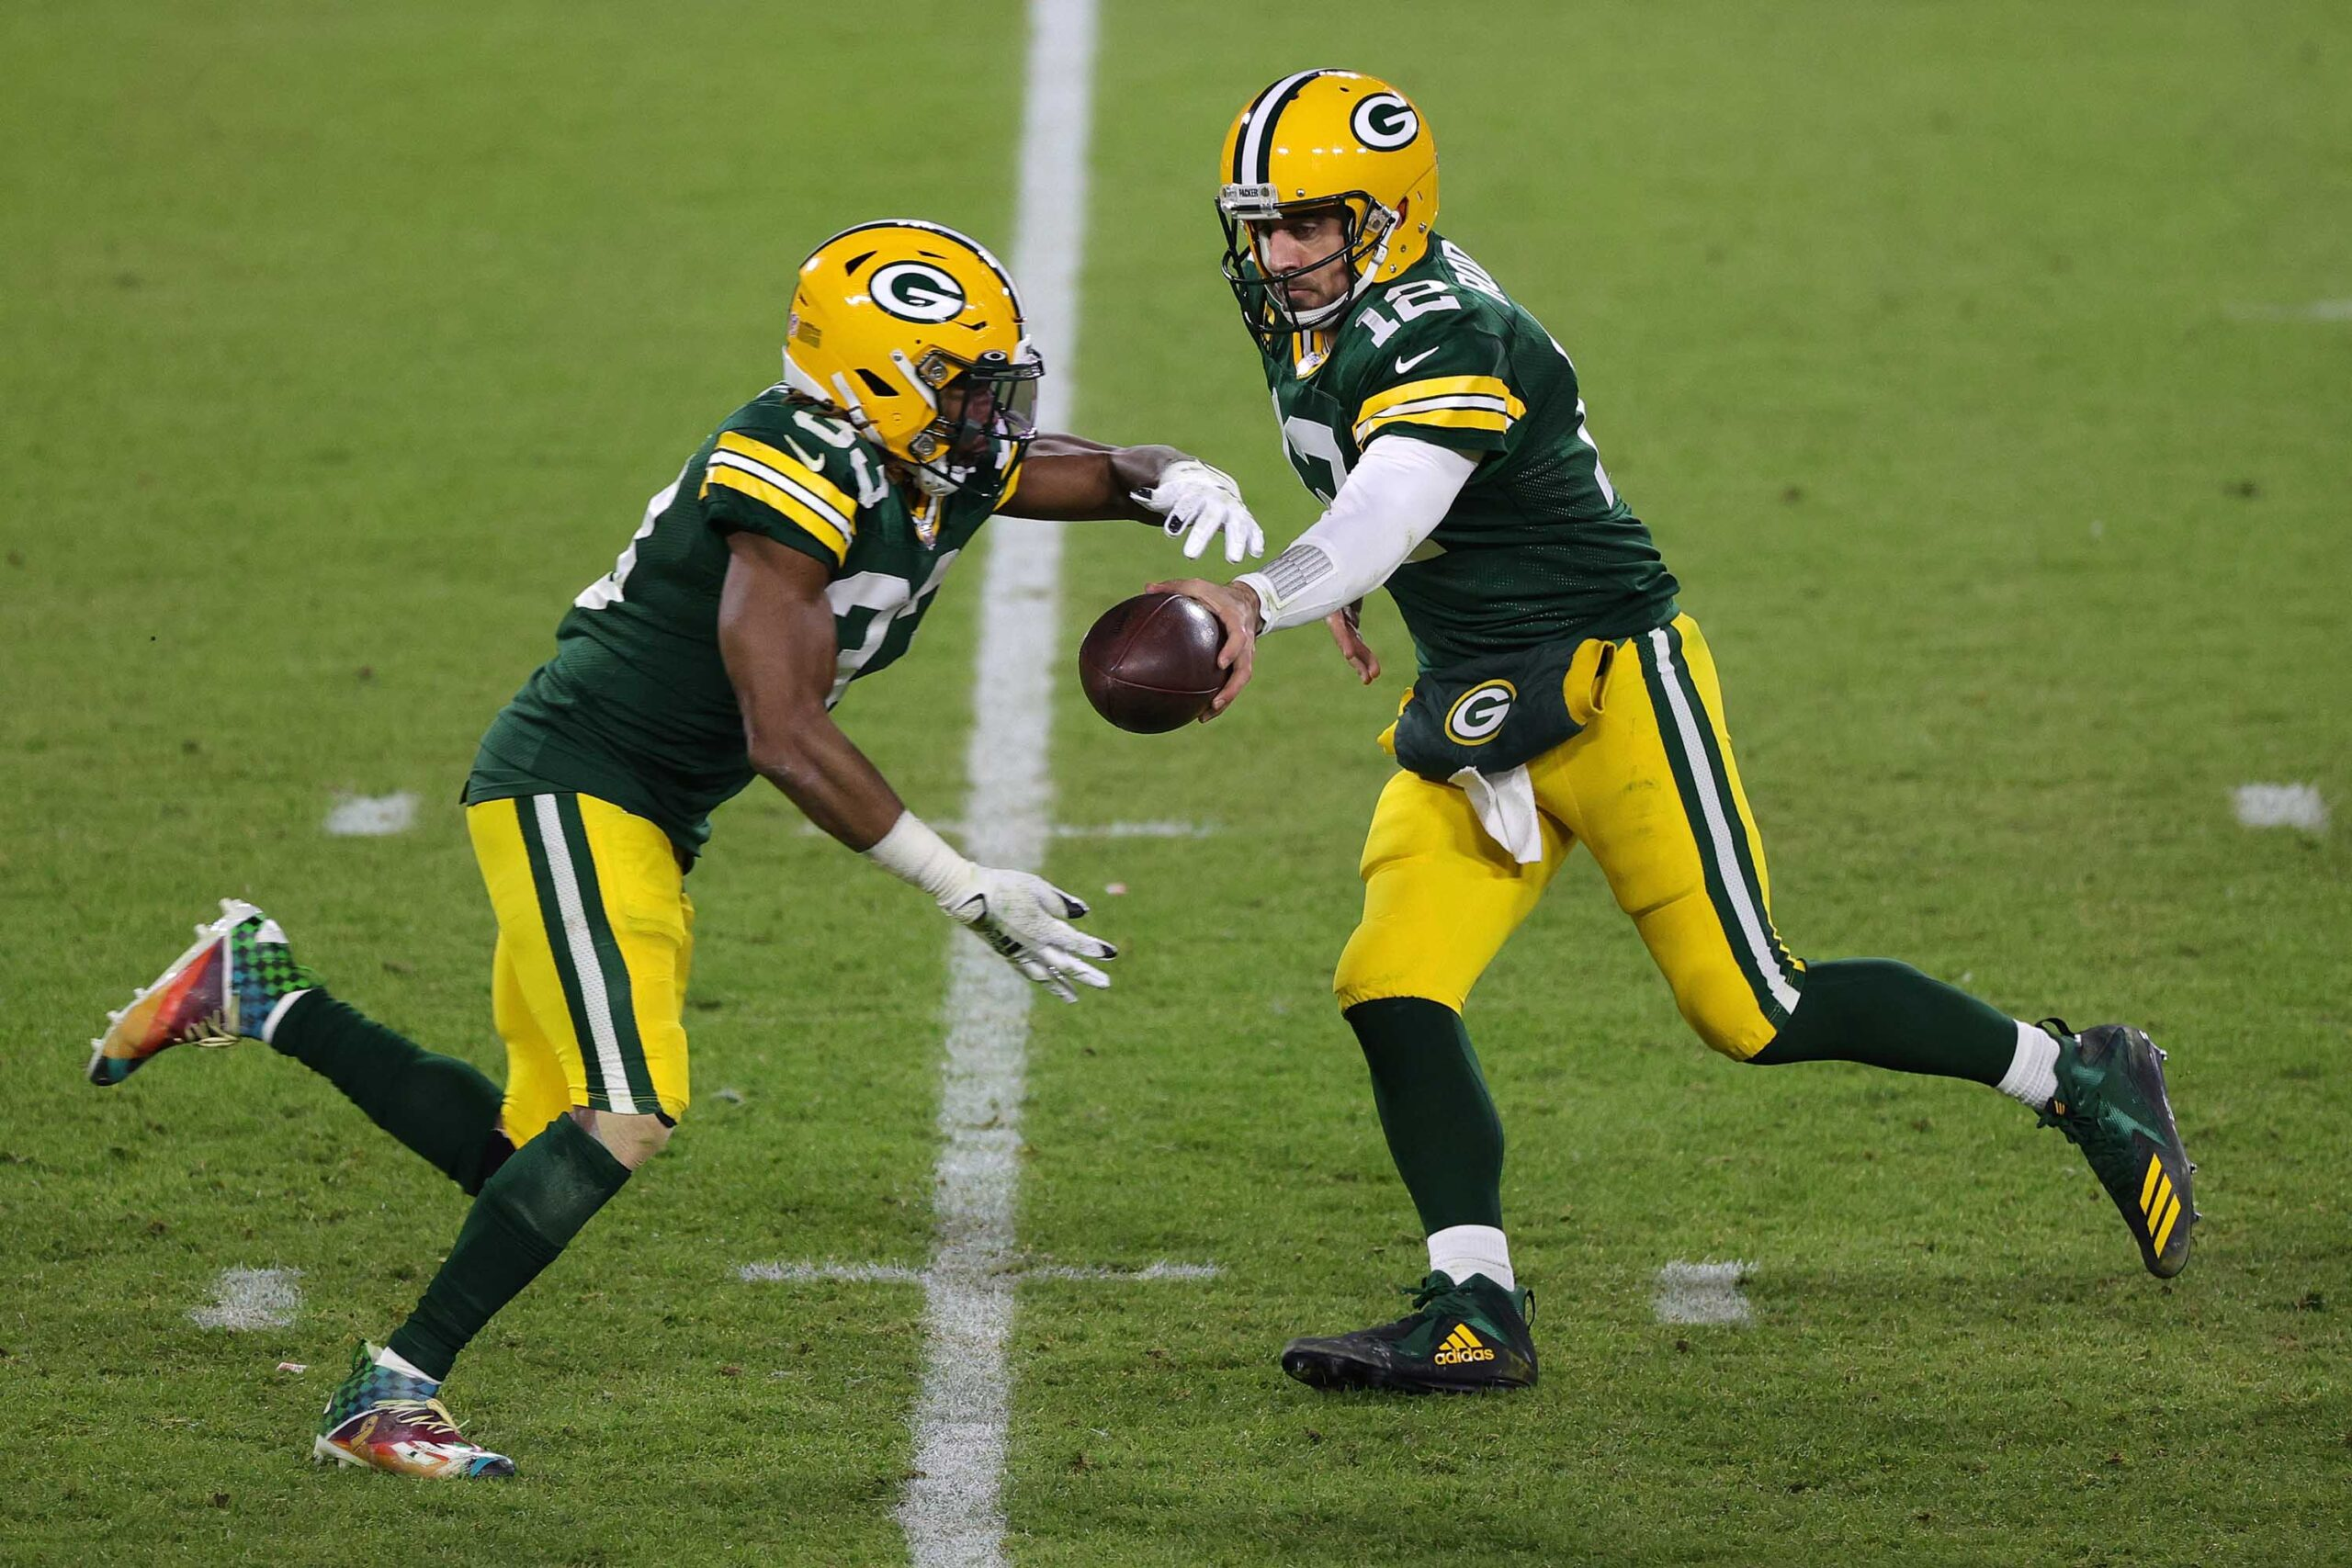 Aaron Rodgers #12 of the Green Bay Packers hands the ball to Aaron Jones #33.